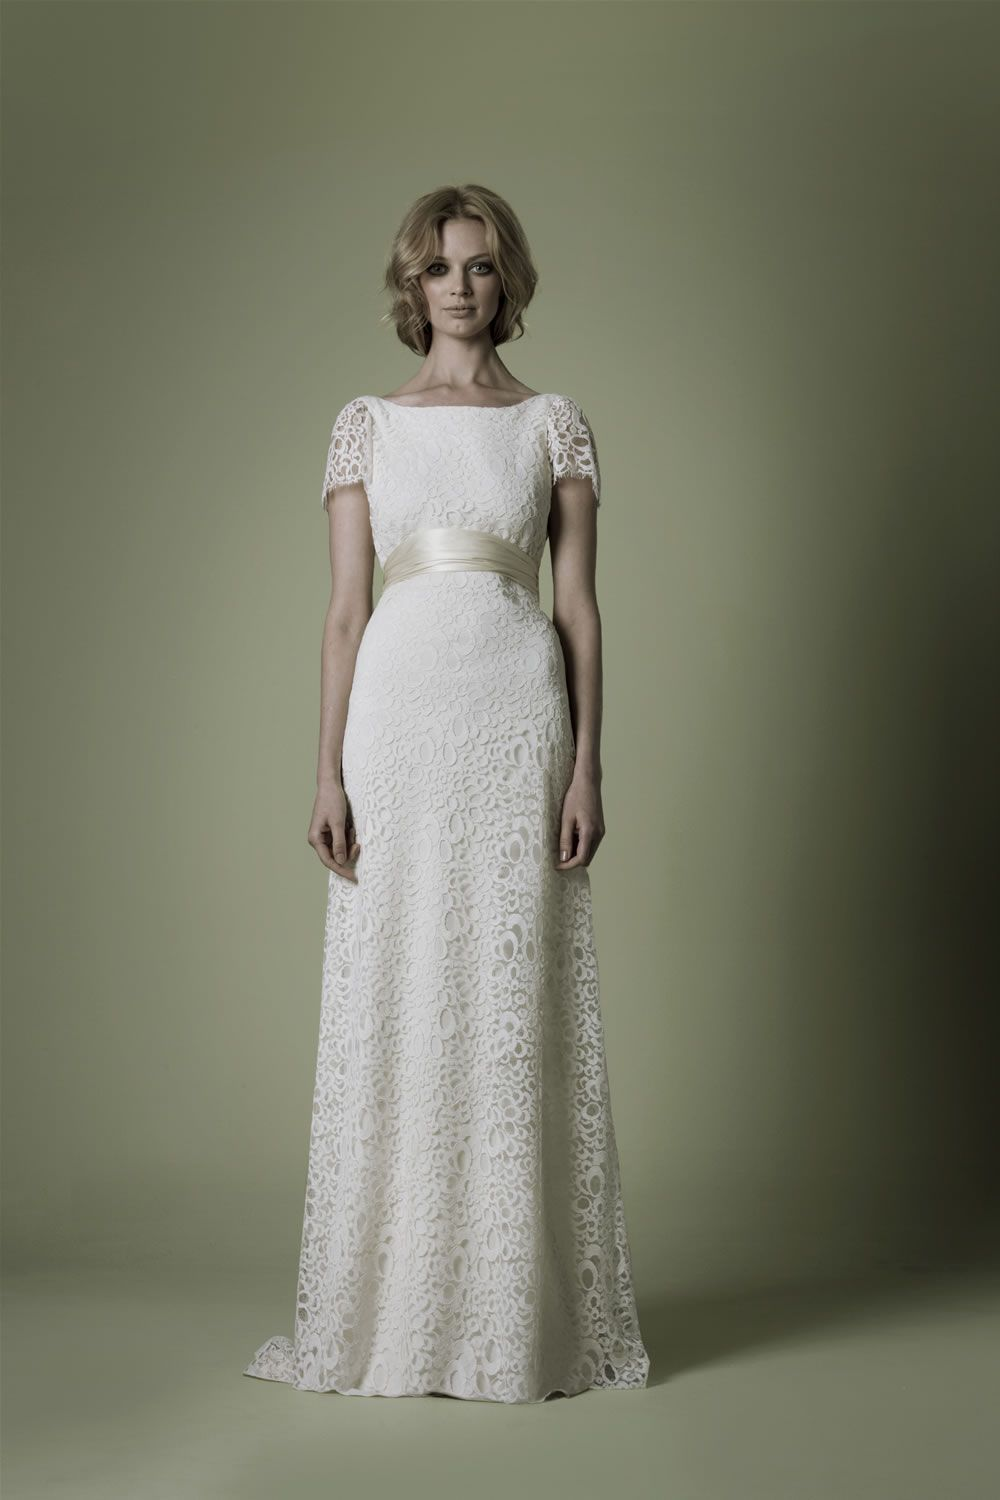 1960s dress would keep the sash but not the sleeves